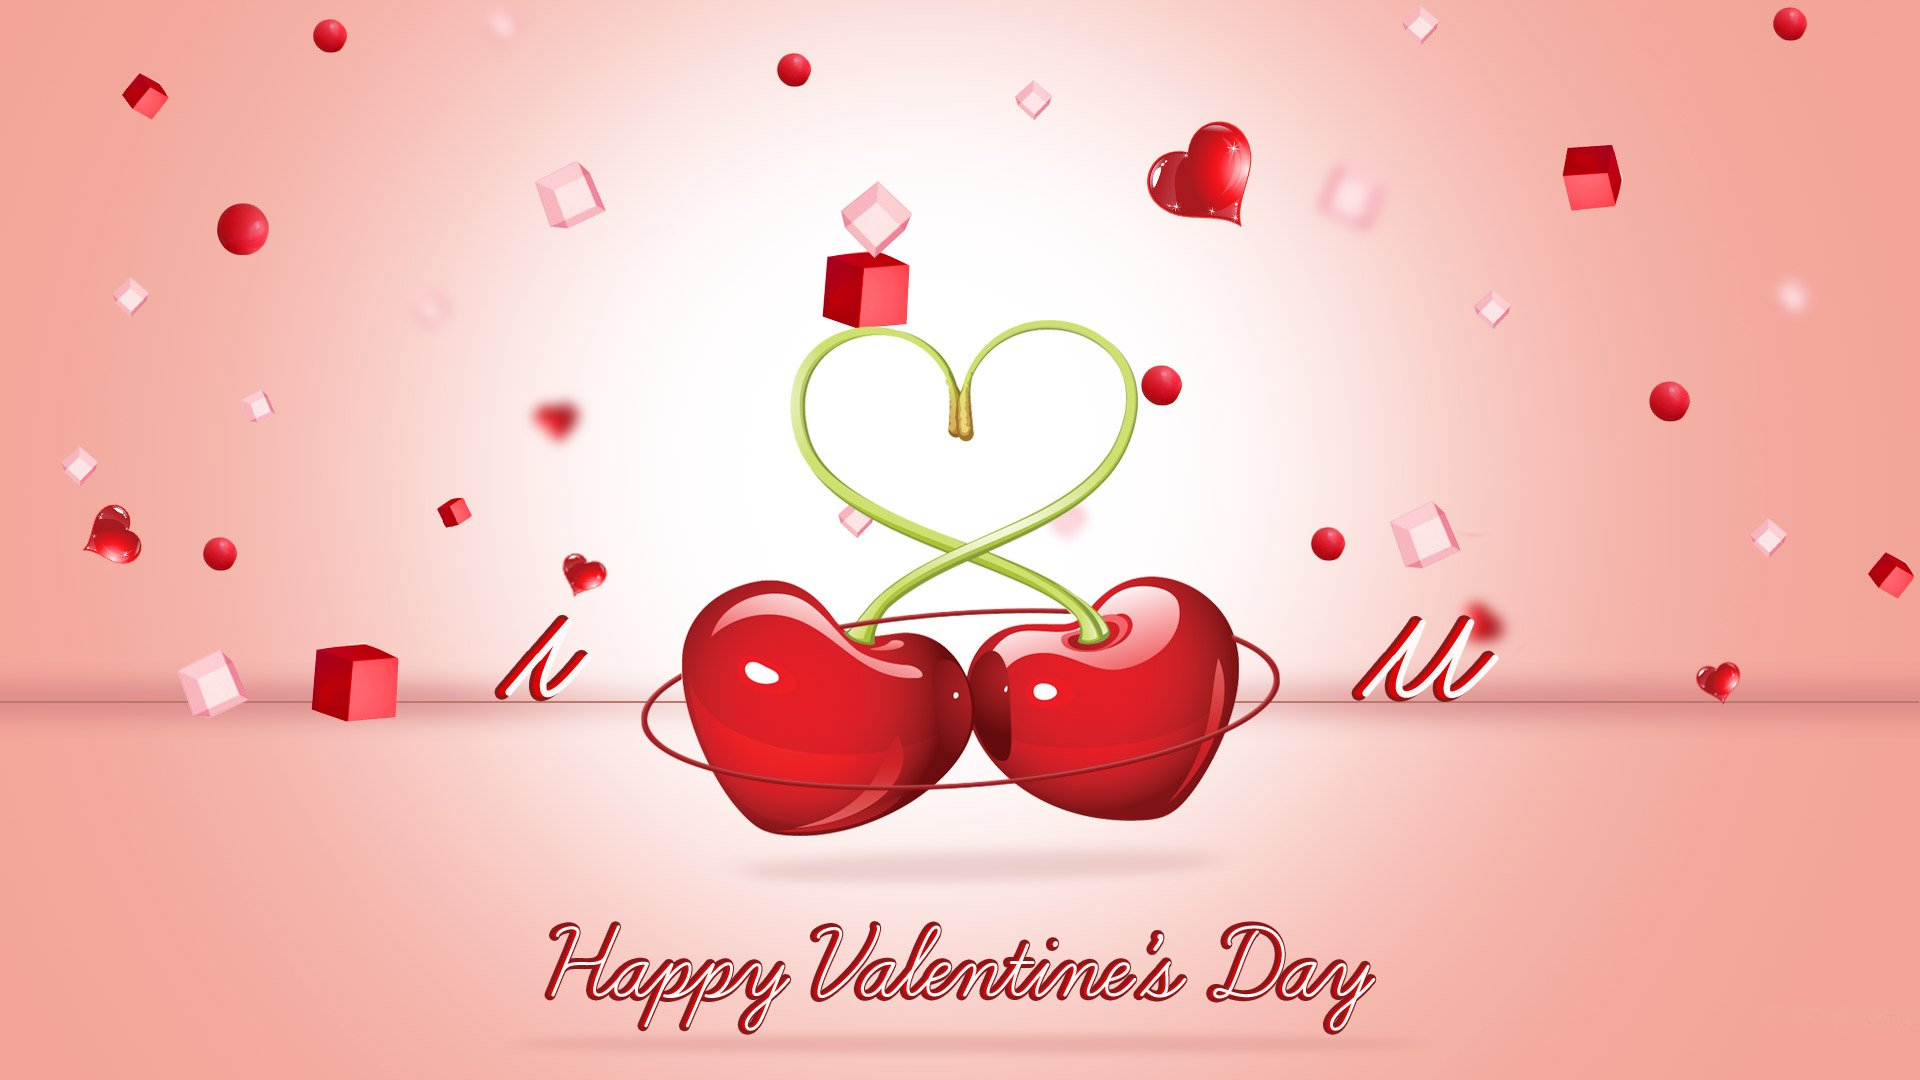 Disney valentines wallpaper backgrounds wallpapersafari - Background for valentine pictures ...